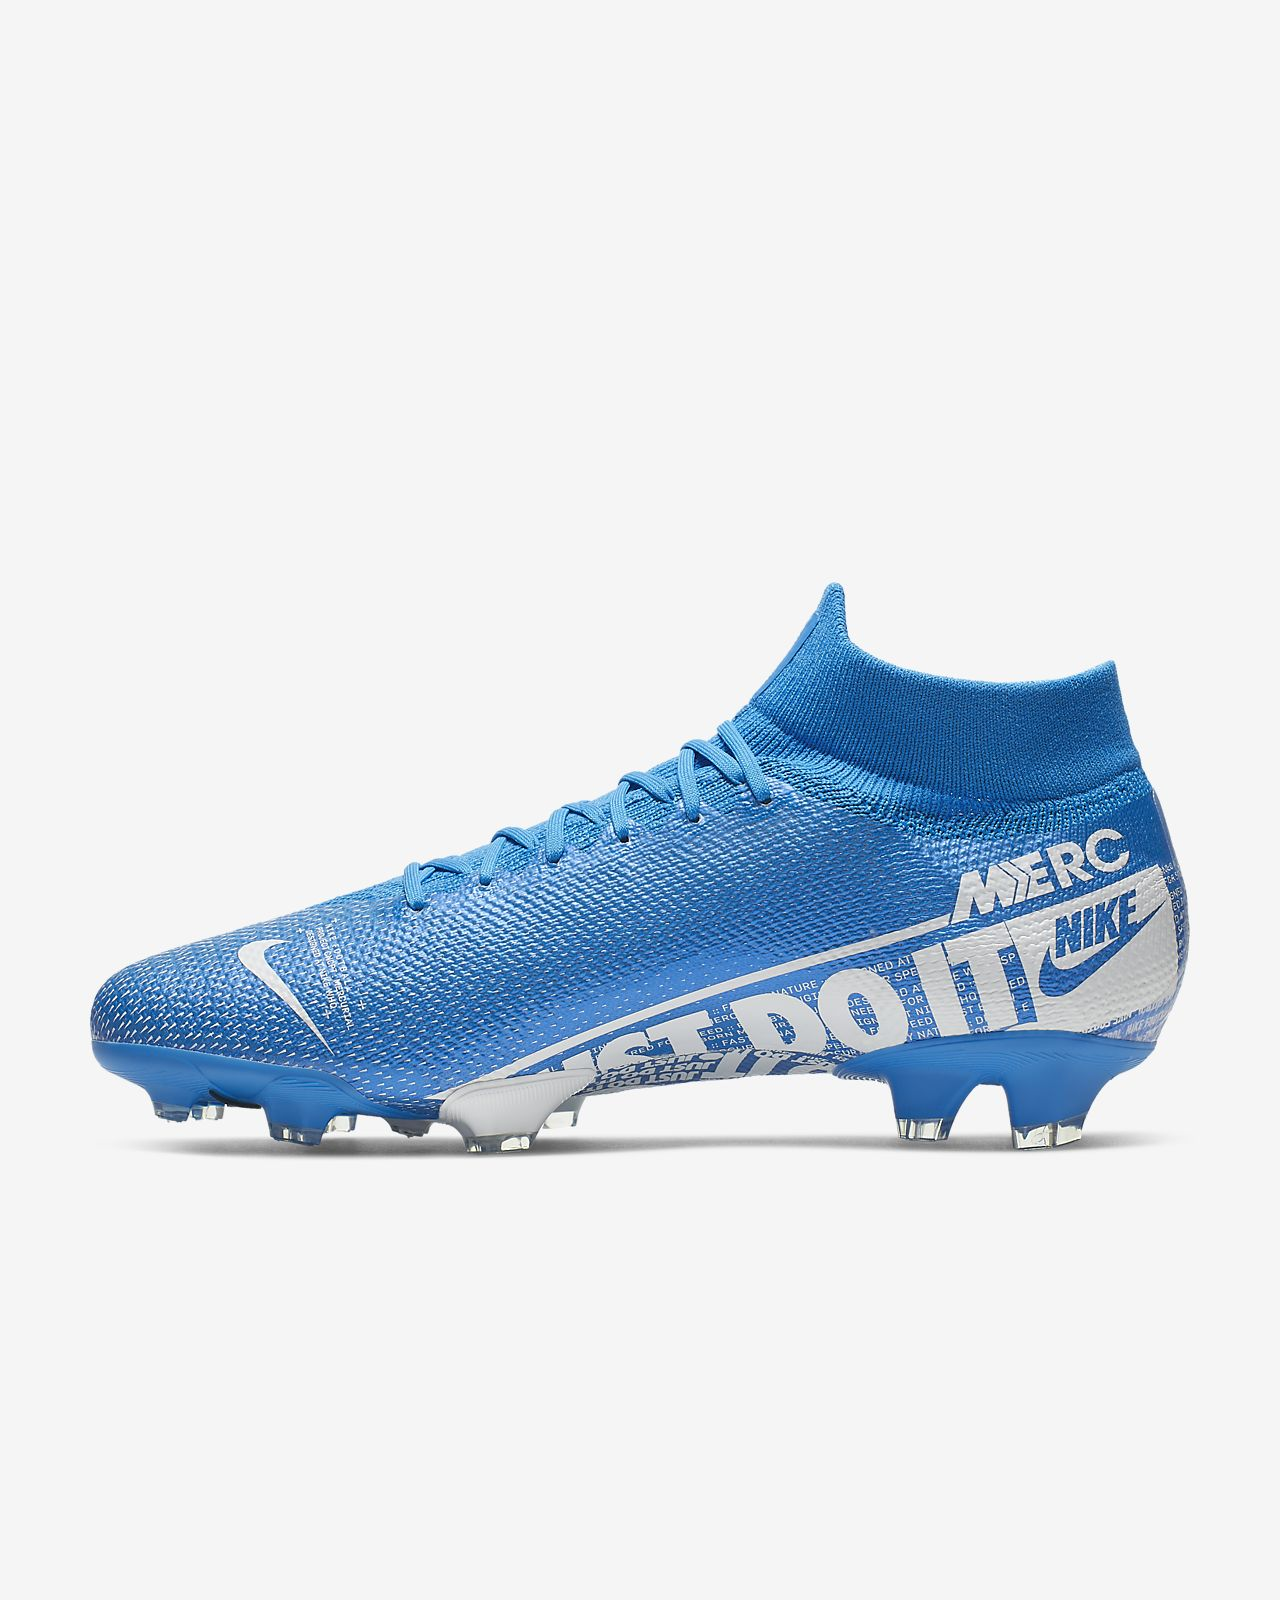 photos officielles ef8c0 79e7b Chaussure de football à crampons pour terrain sec Nike Mercurial Superfly 7  Pro FG